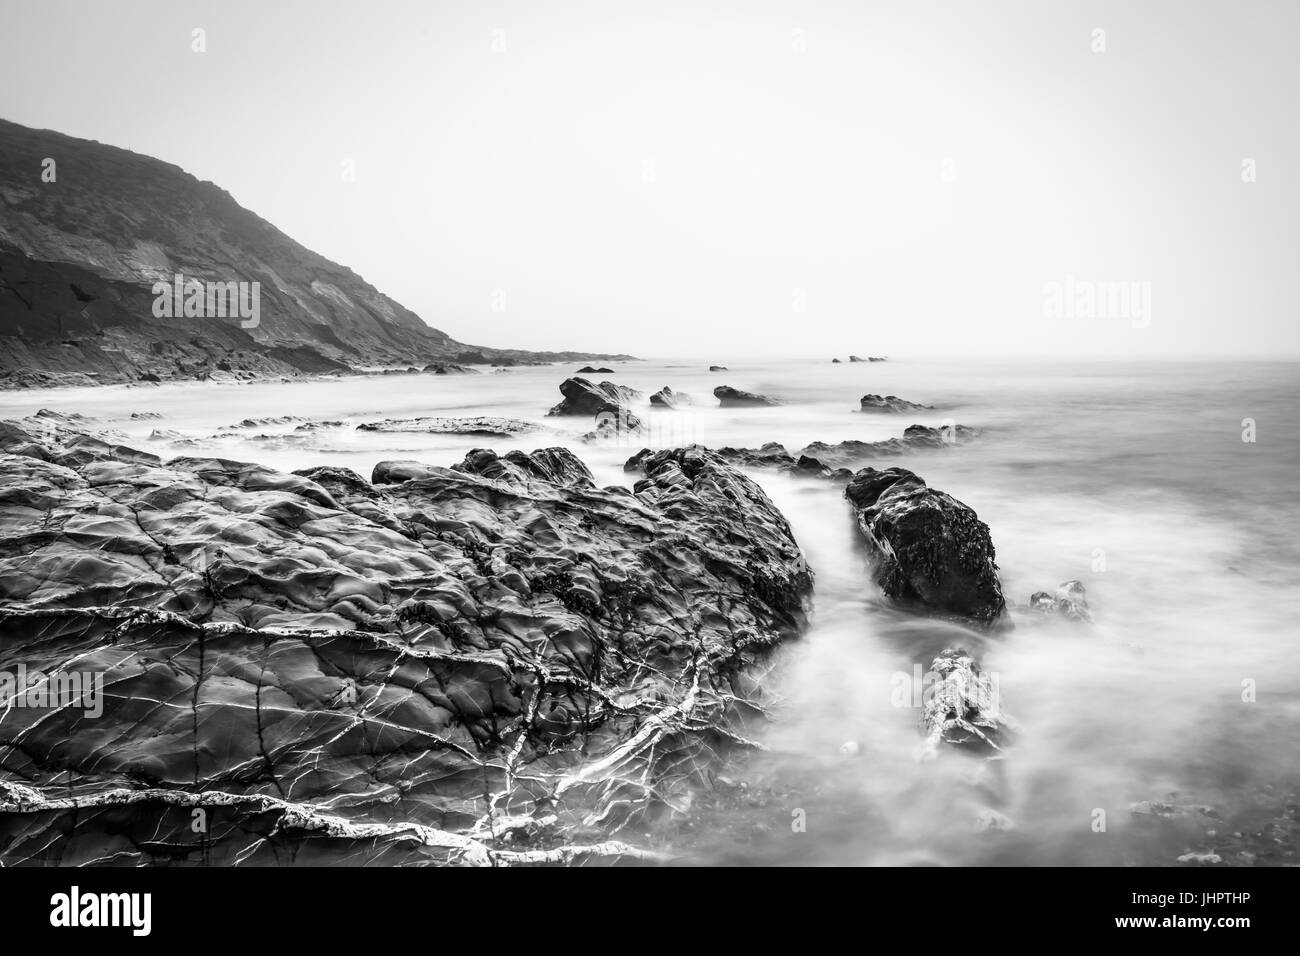 crackington haven in monochrome - Stock Image